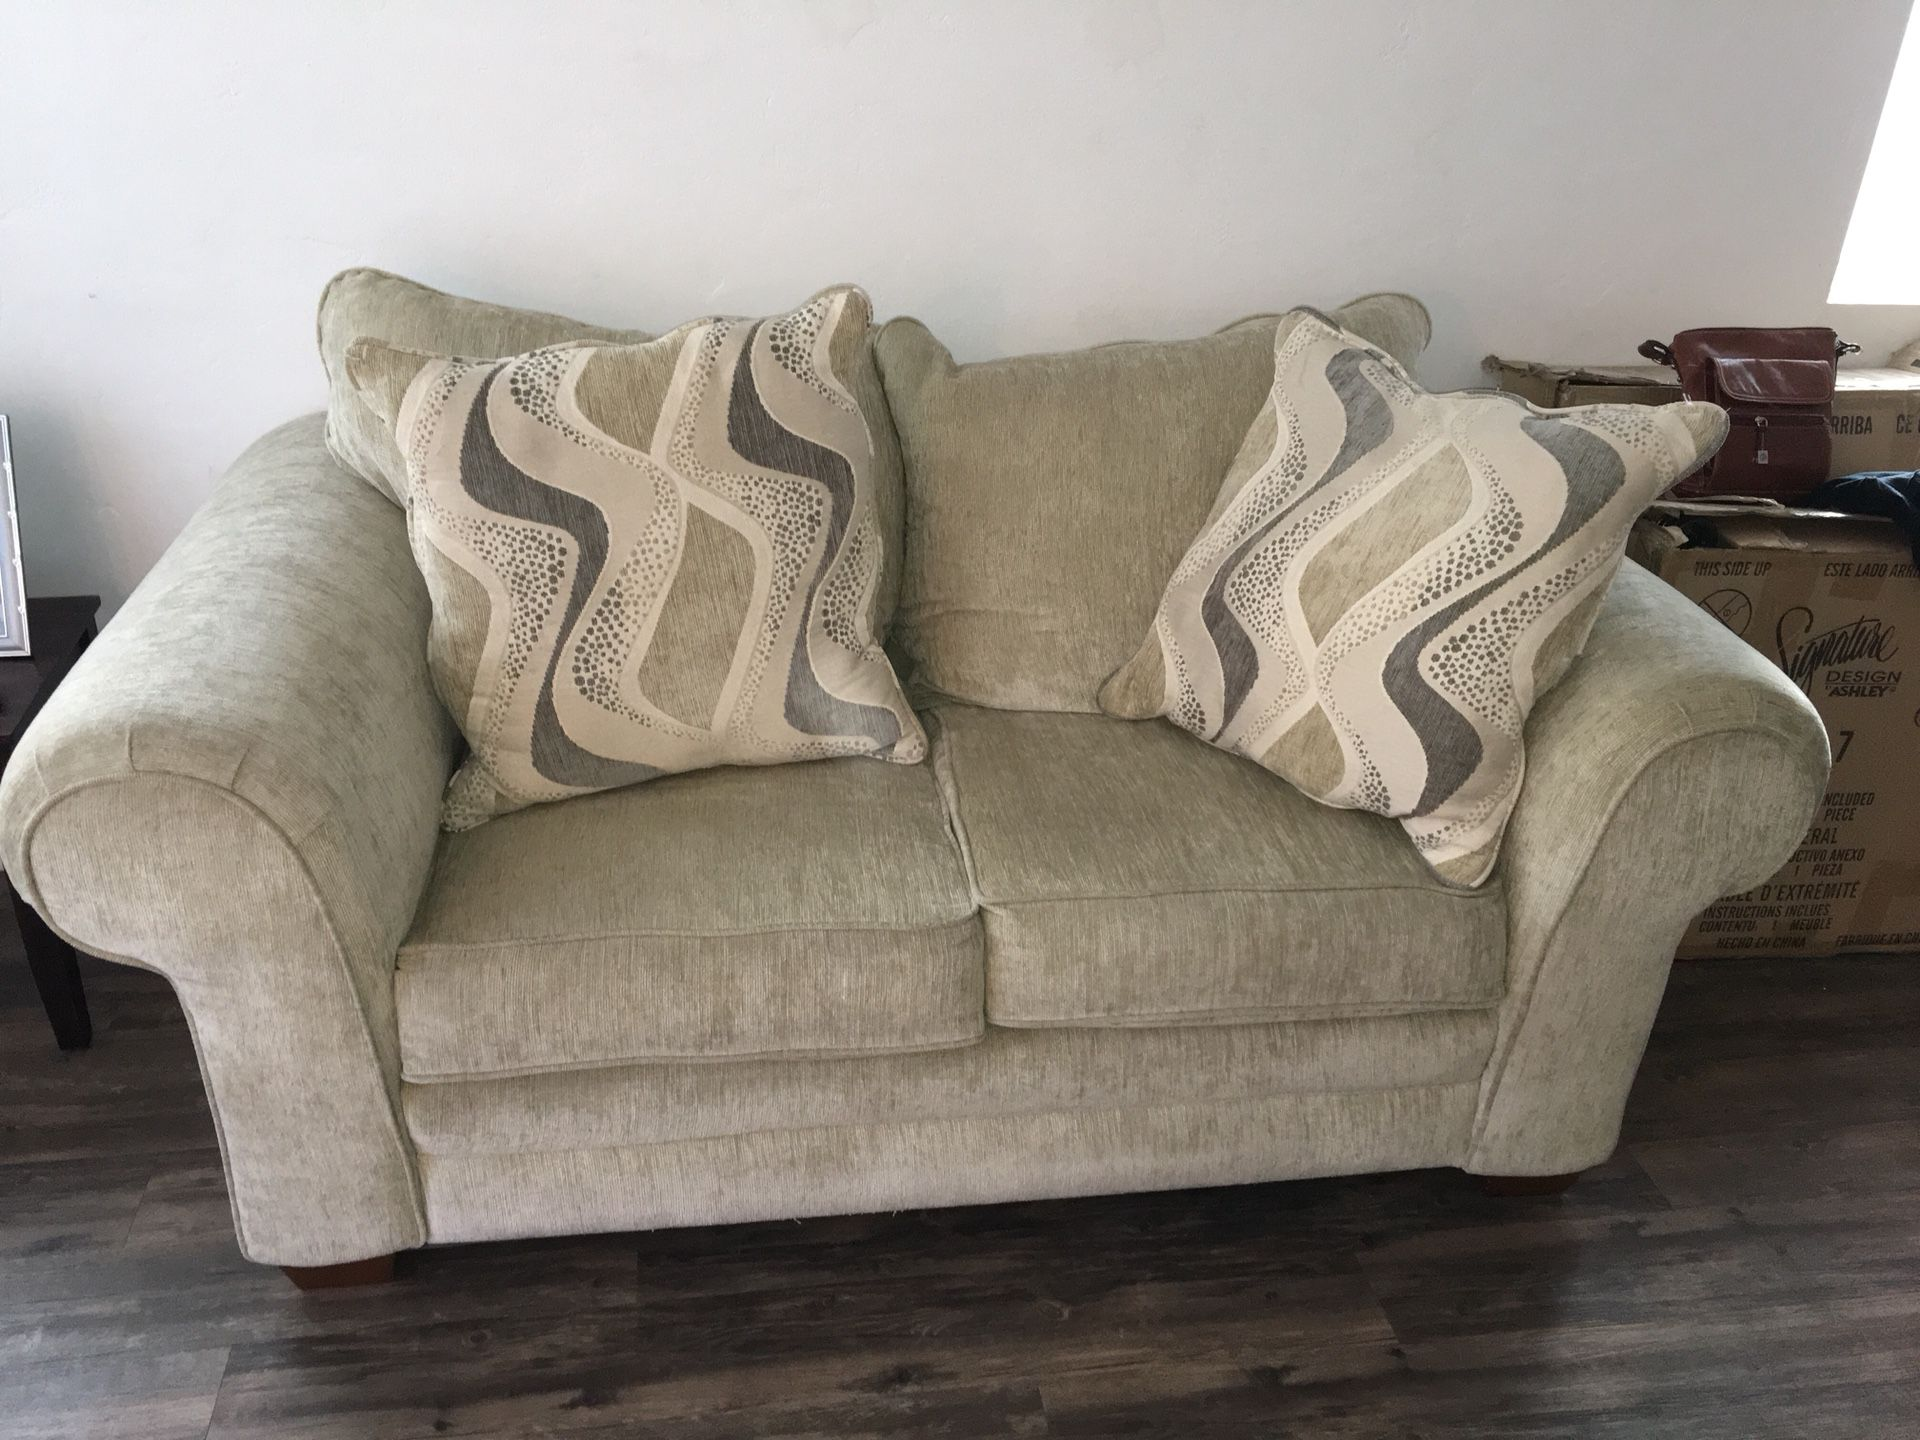 2 beautiful Cream colored couches